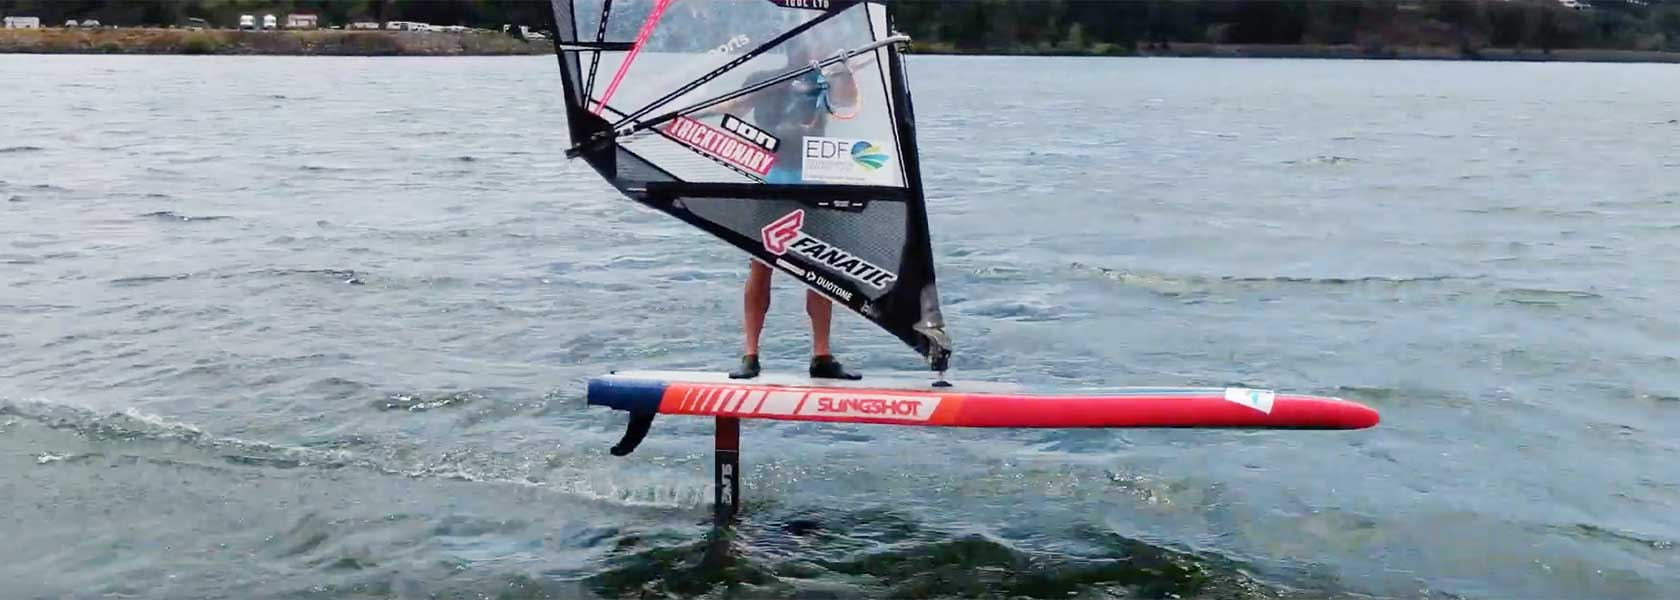 Windsurfing Archives - Slingshot Sports